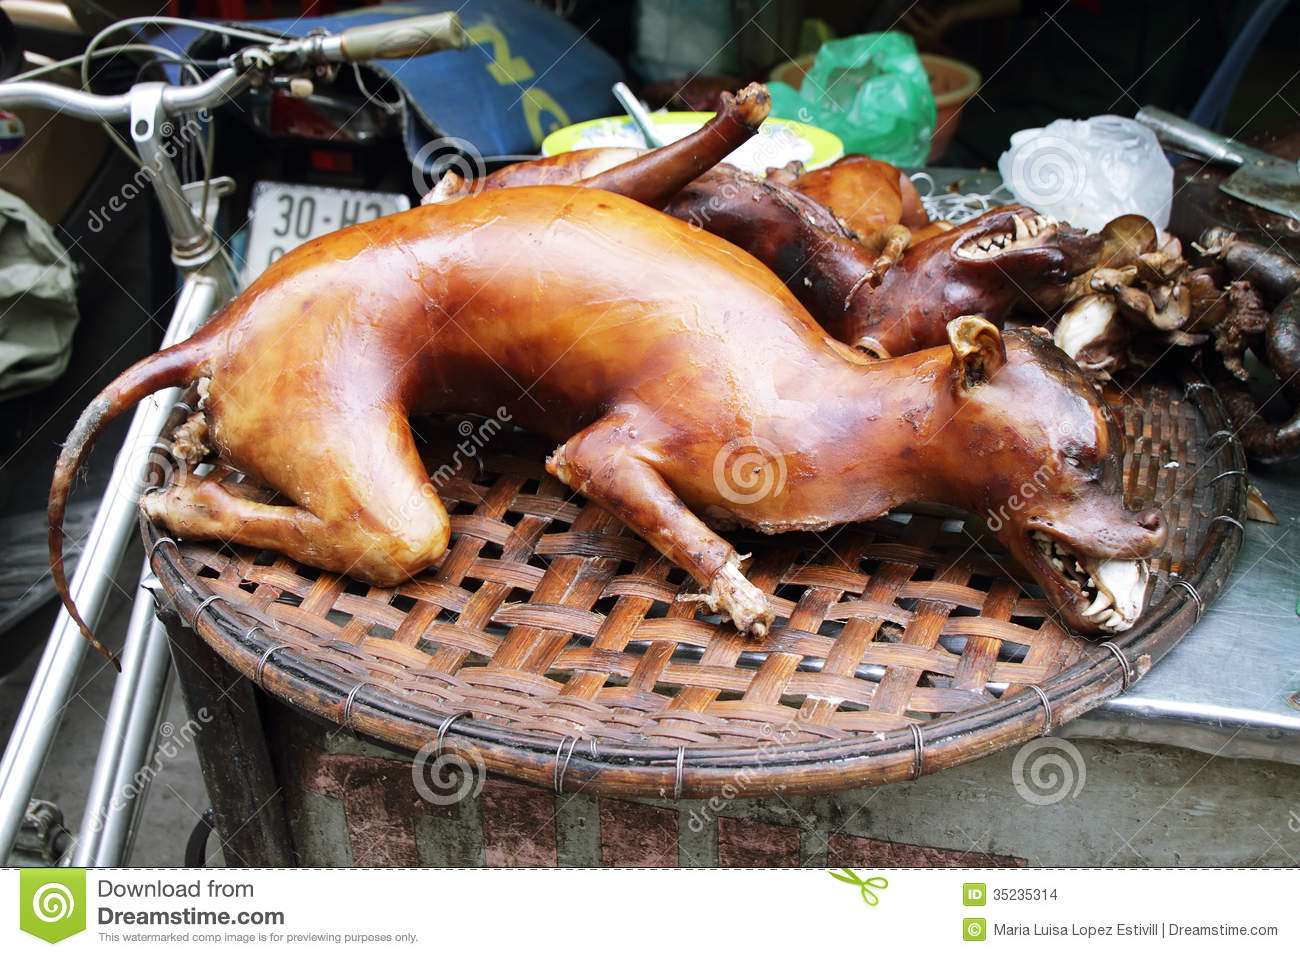 Can Dogs Eat Cooked Meat